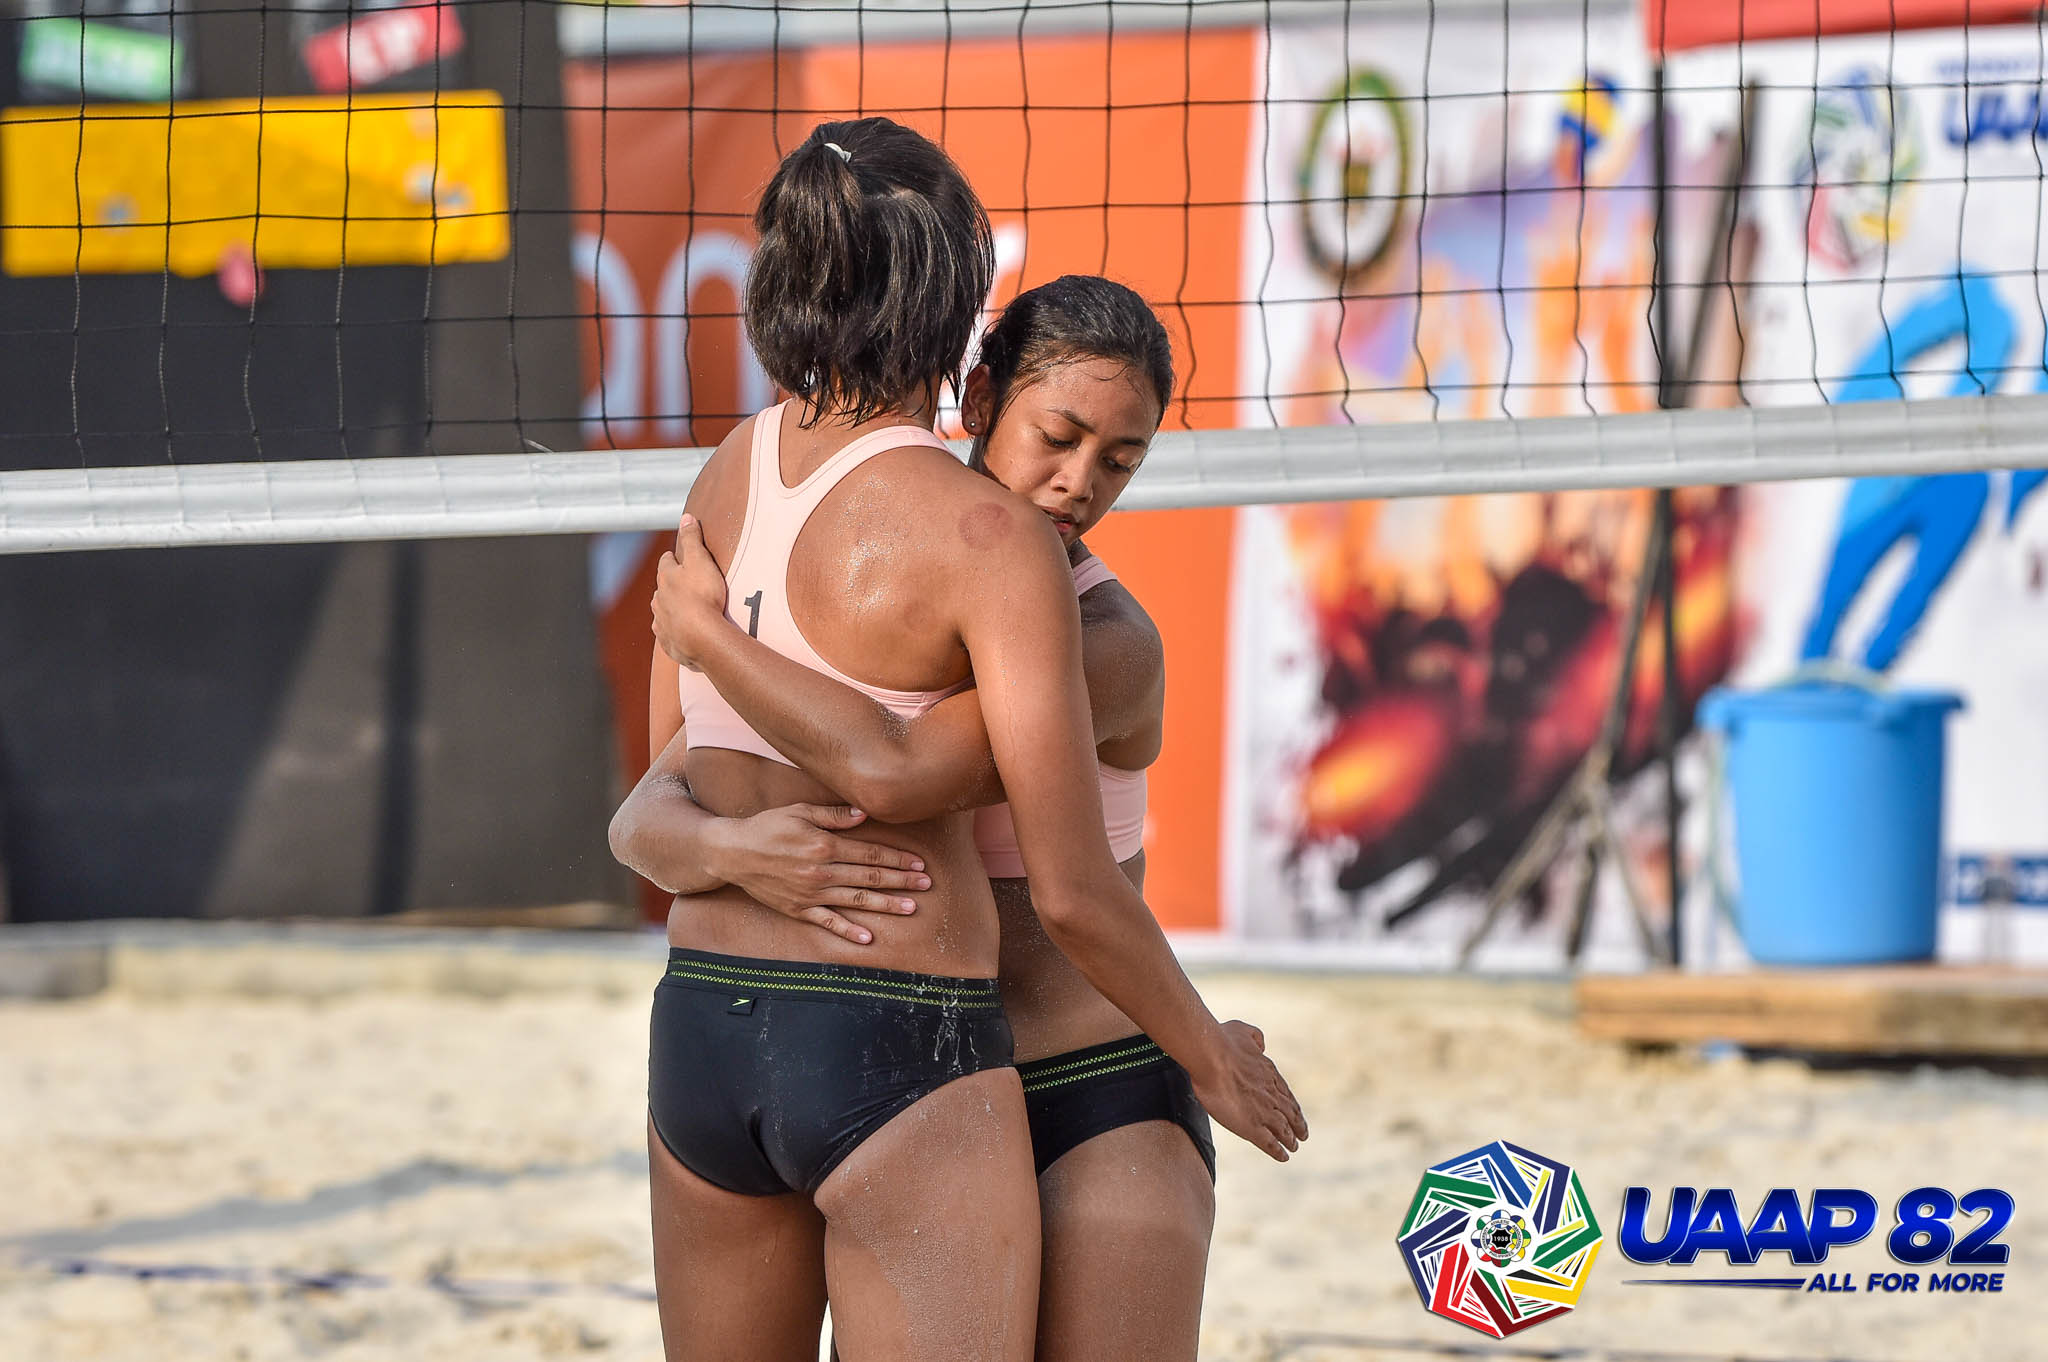 UAAP-Season-82-womens-beach-volleyball-DLSU-ERNESTINE-TIAMZON-JUSTINE-JAZARENO Tin Tiamzon looks to leave lasting legacy to La Salle Beach Volleyball DLSU News UAAP  - philippine sports news